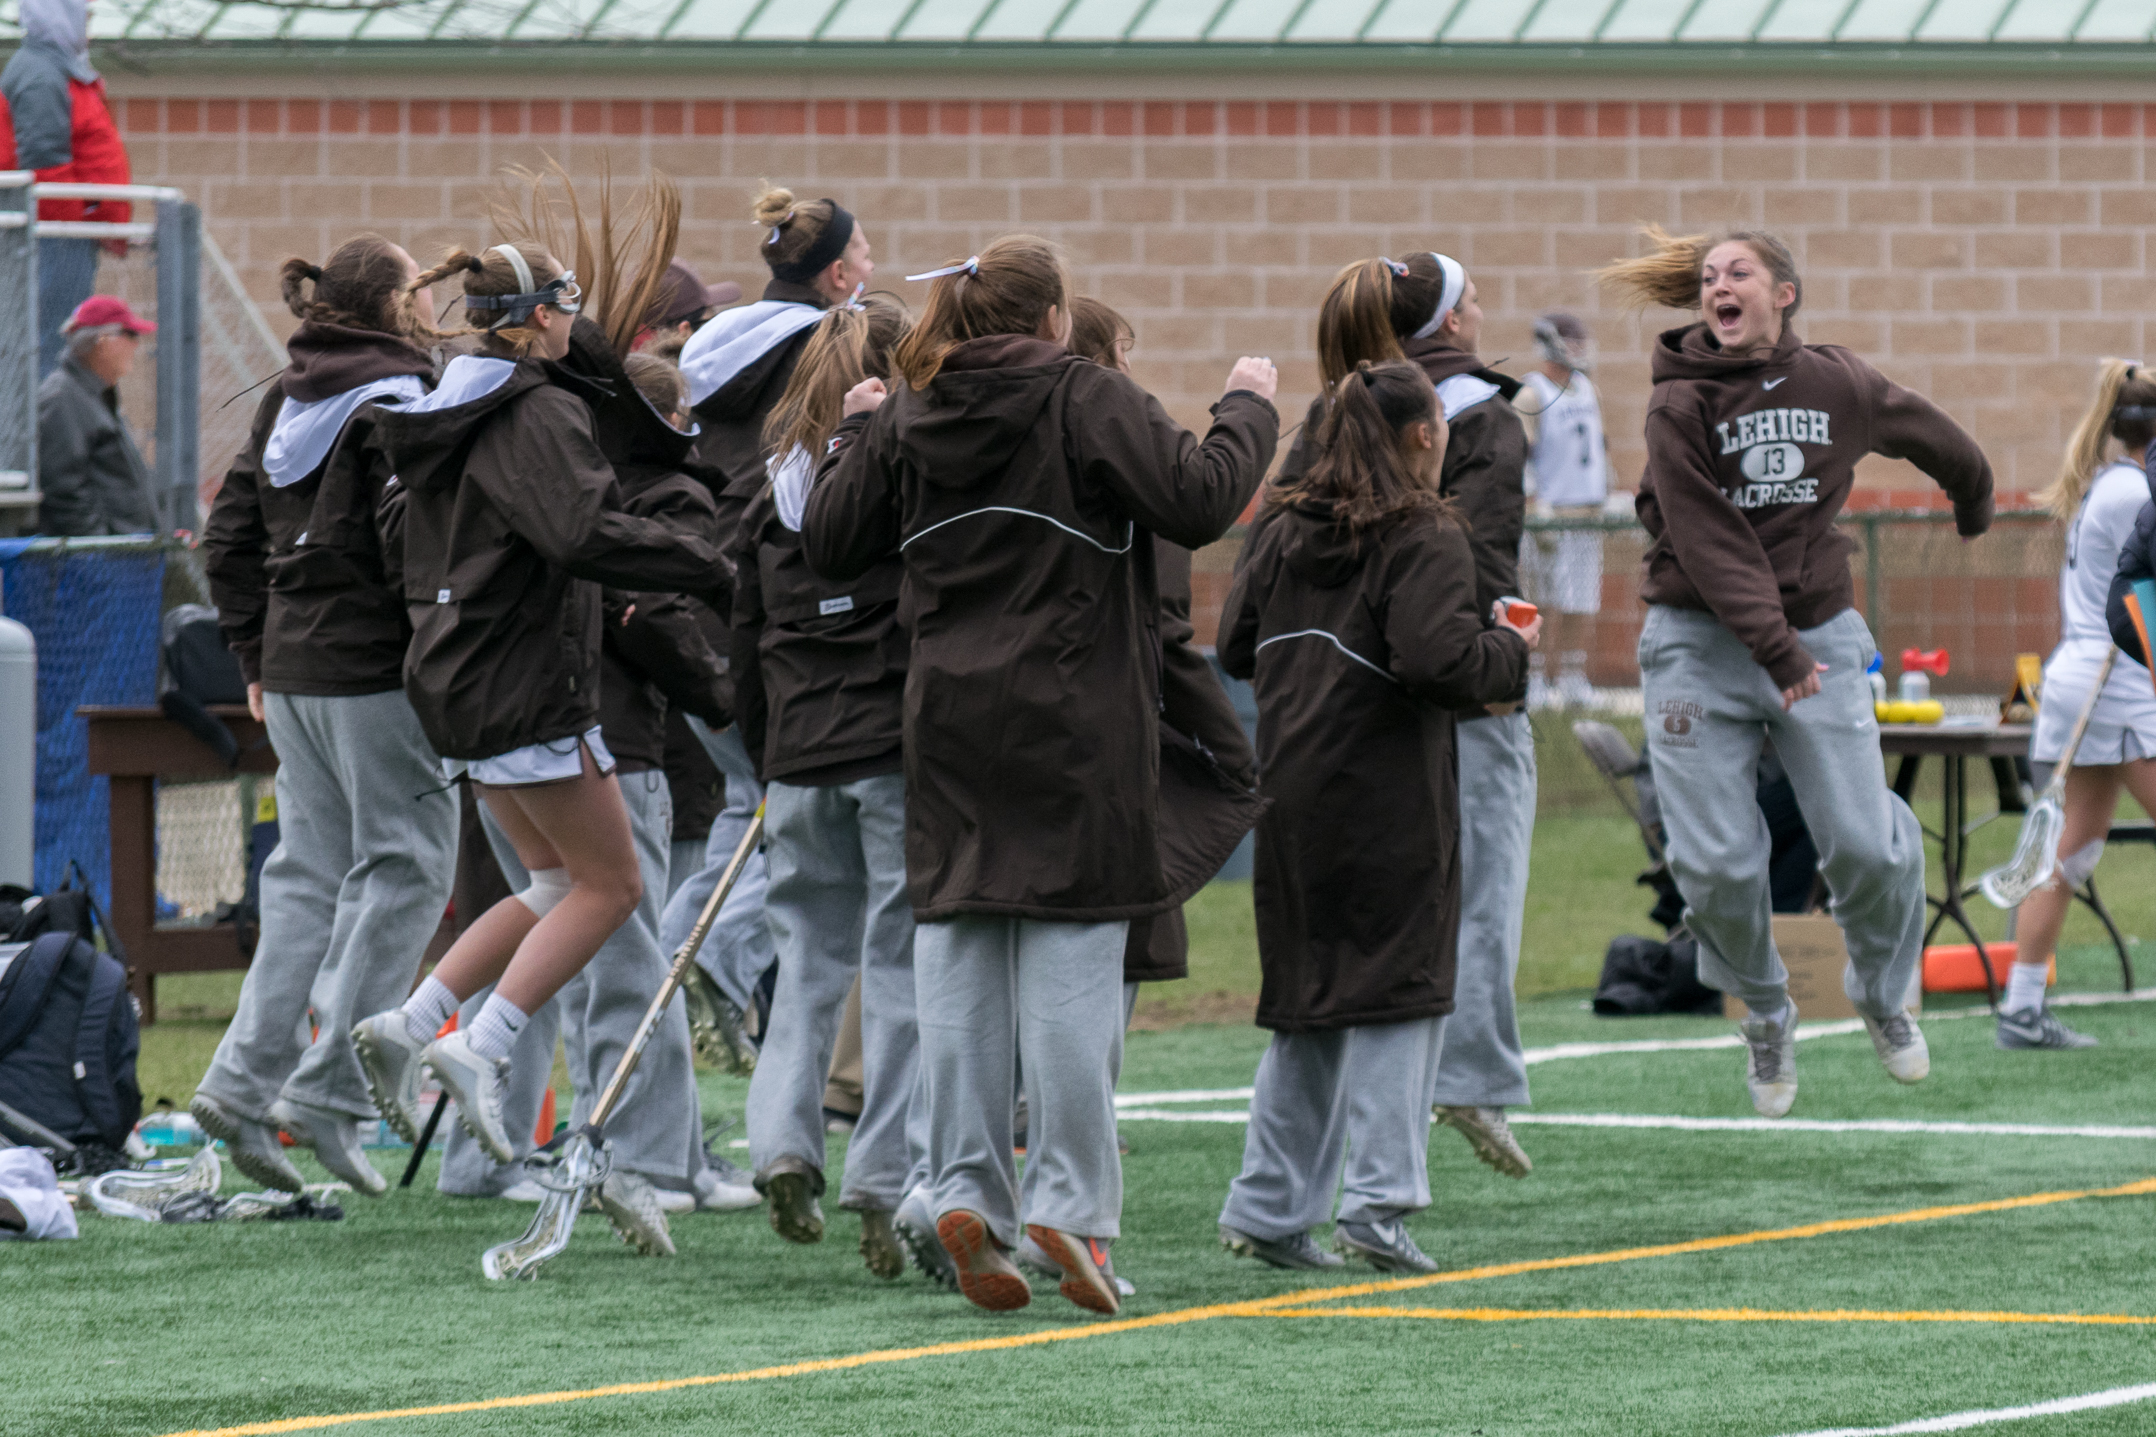 The women's lacrosse team celebrates after their 13-12 victory over Boston University on Saturday, April 1, 2017, on Banko Field. Lehigh held off BU's attempt to tie the game in the last 30 seconds. (Roshan Giyanani/B&W Staff)